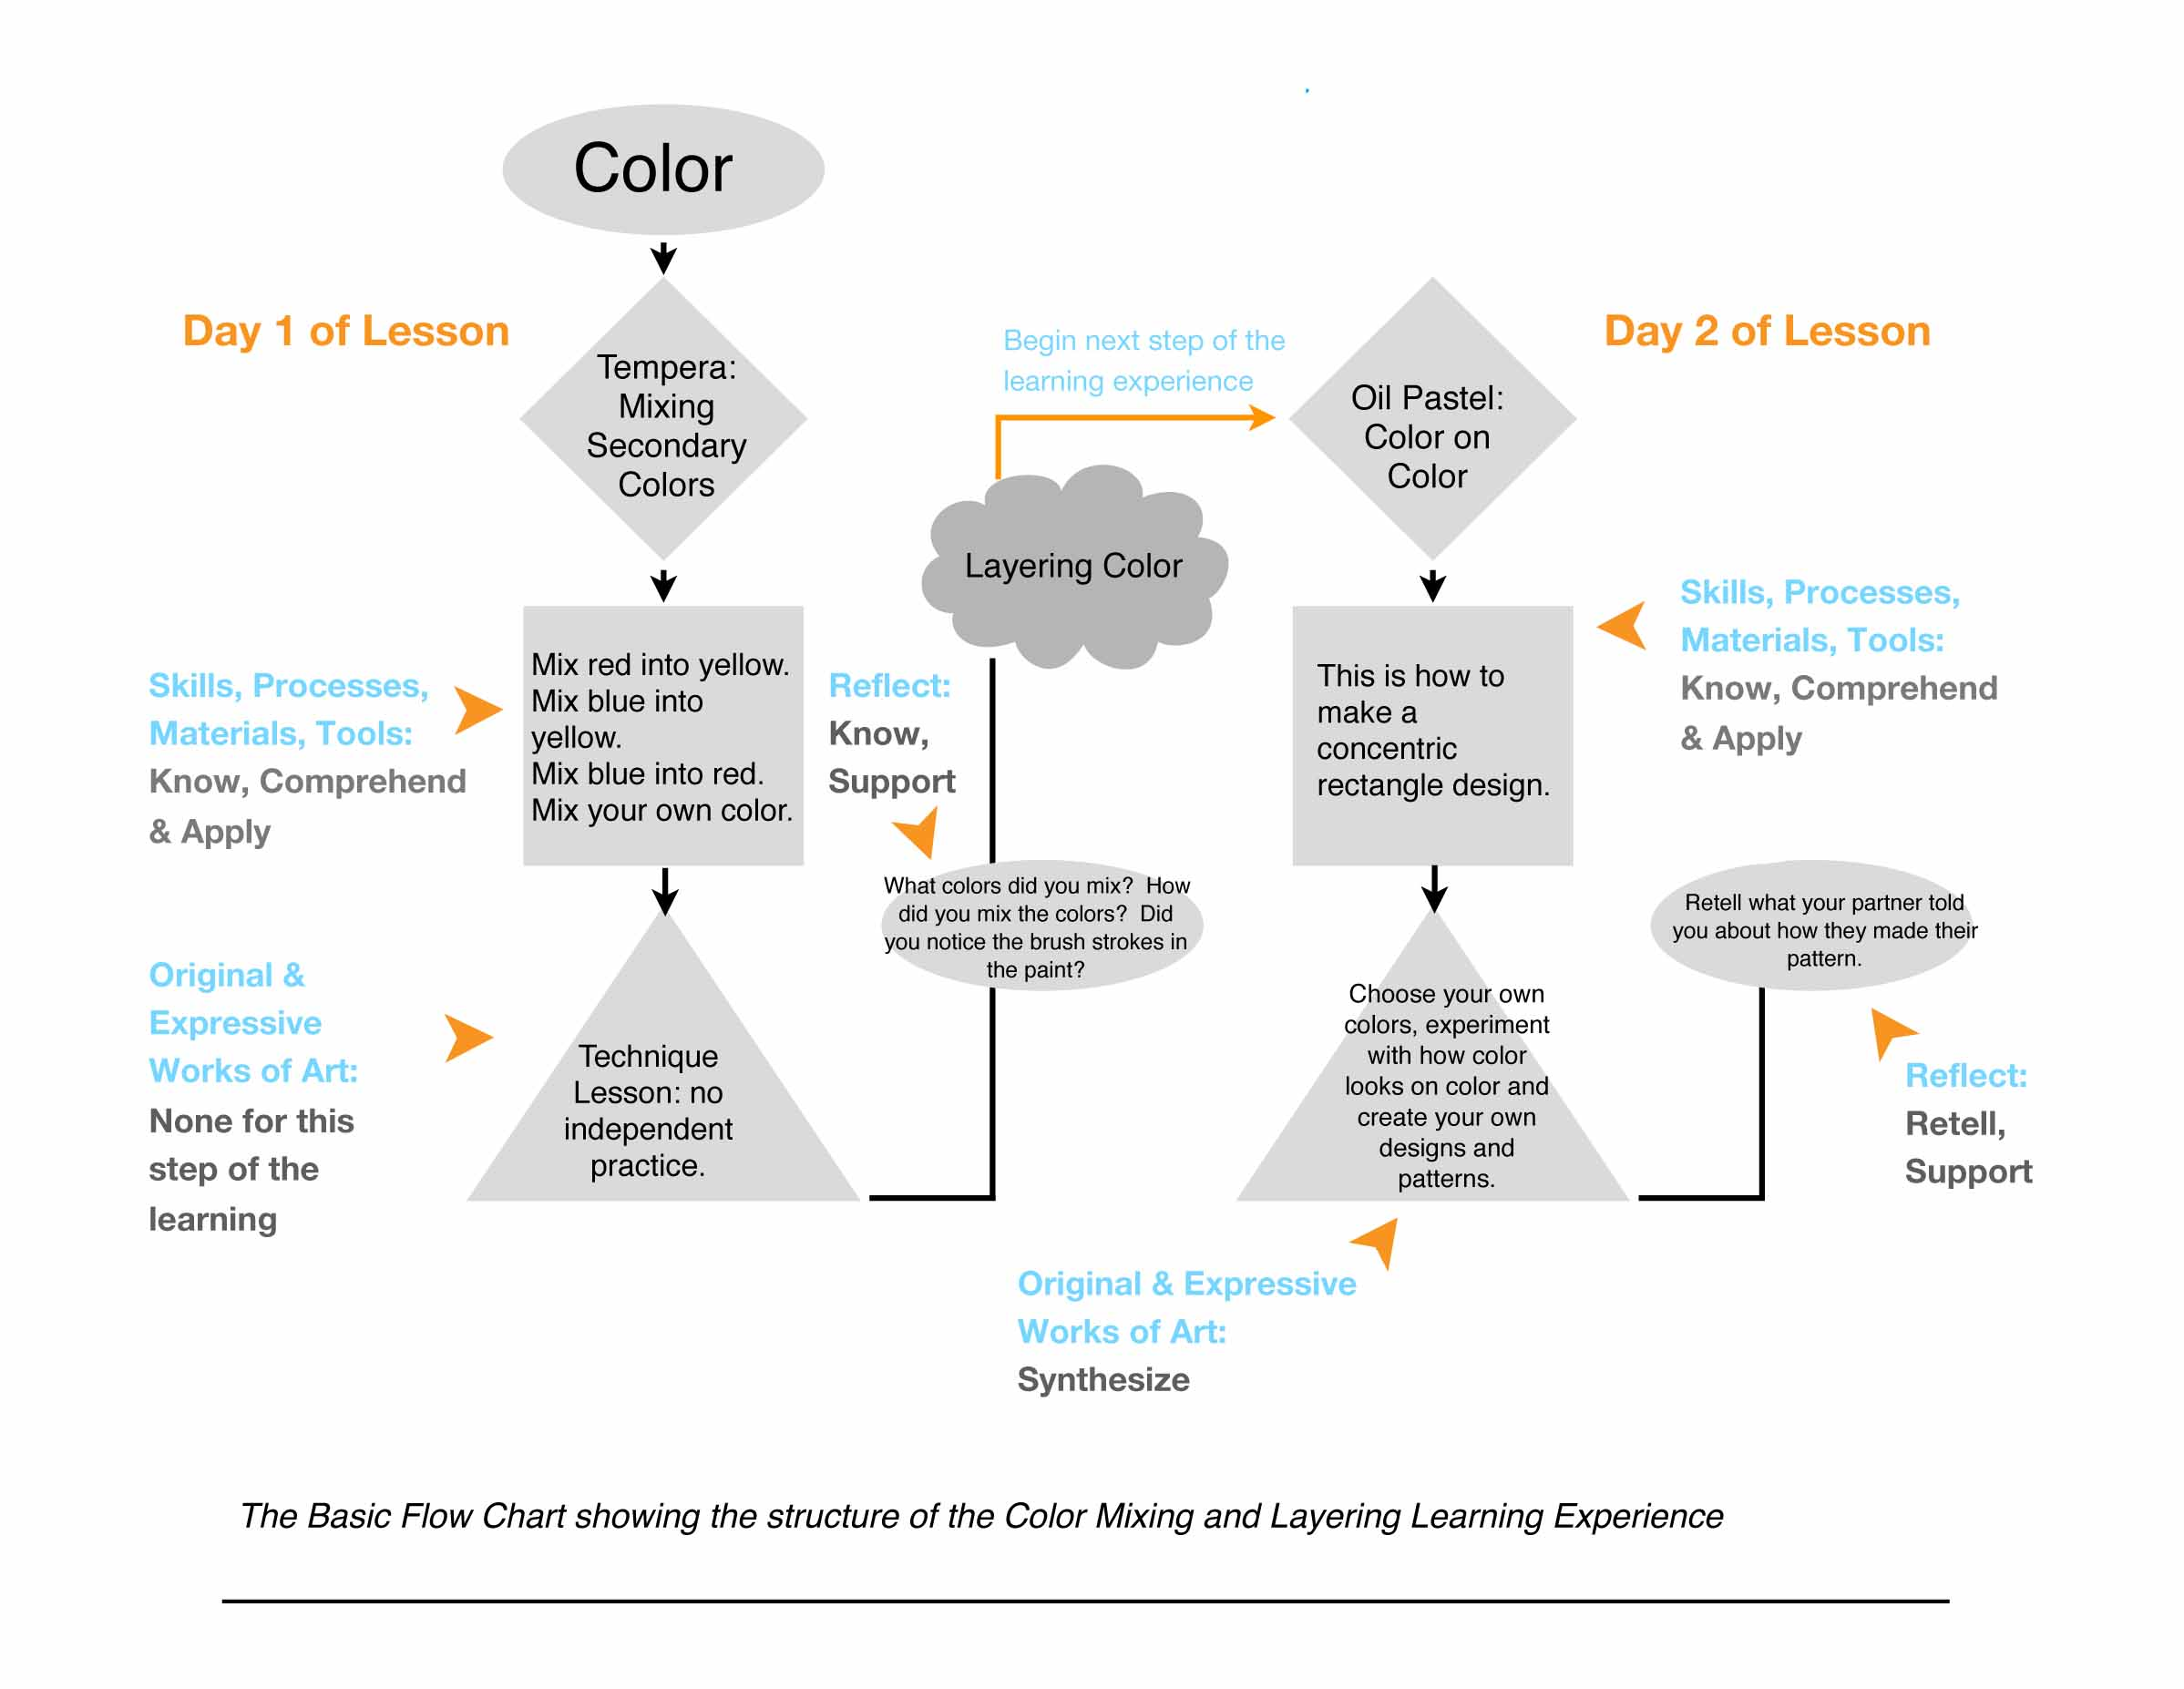 color mixing and layering learning experience-6.jpg